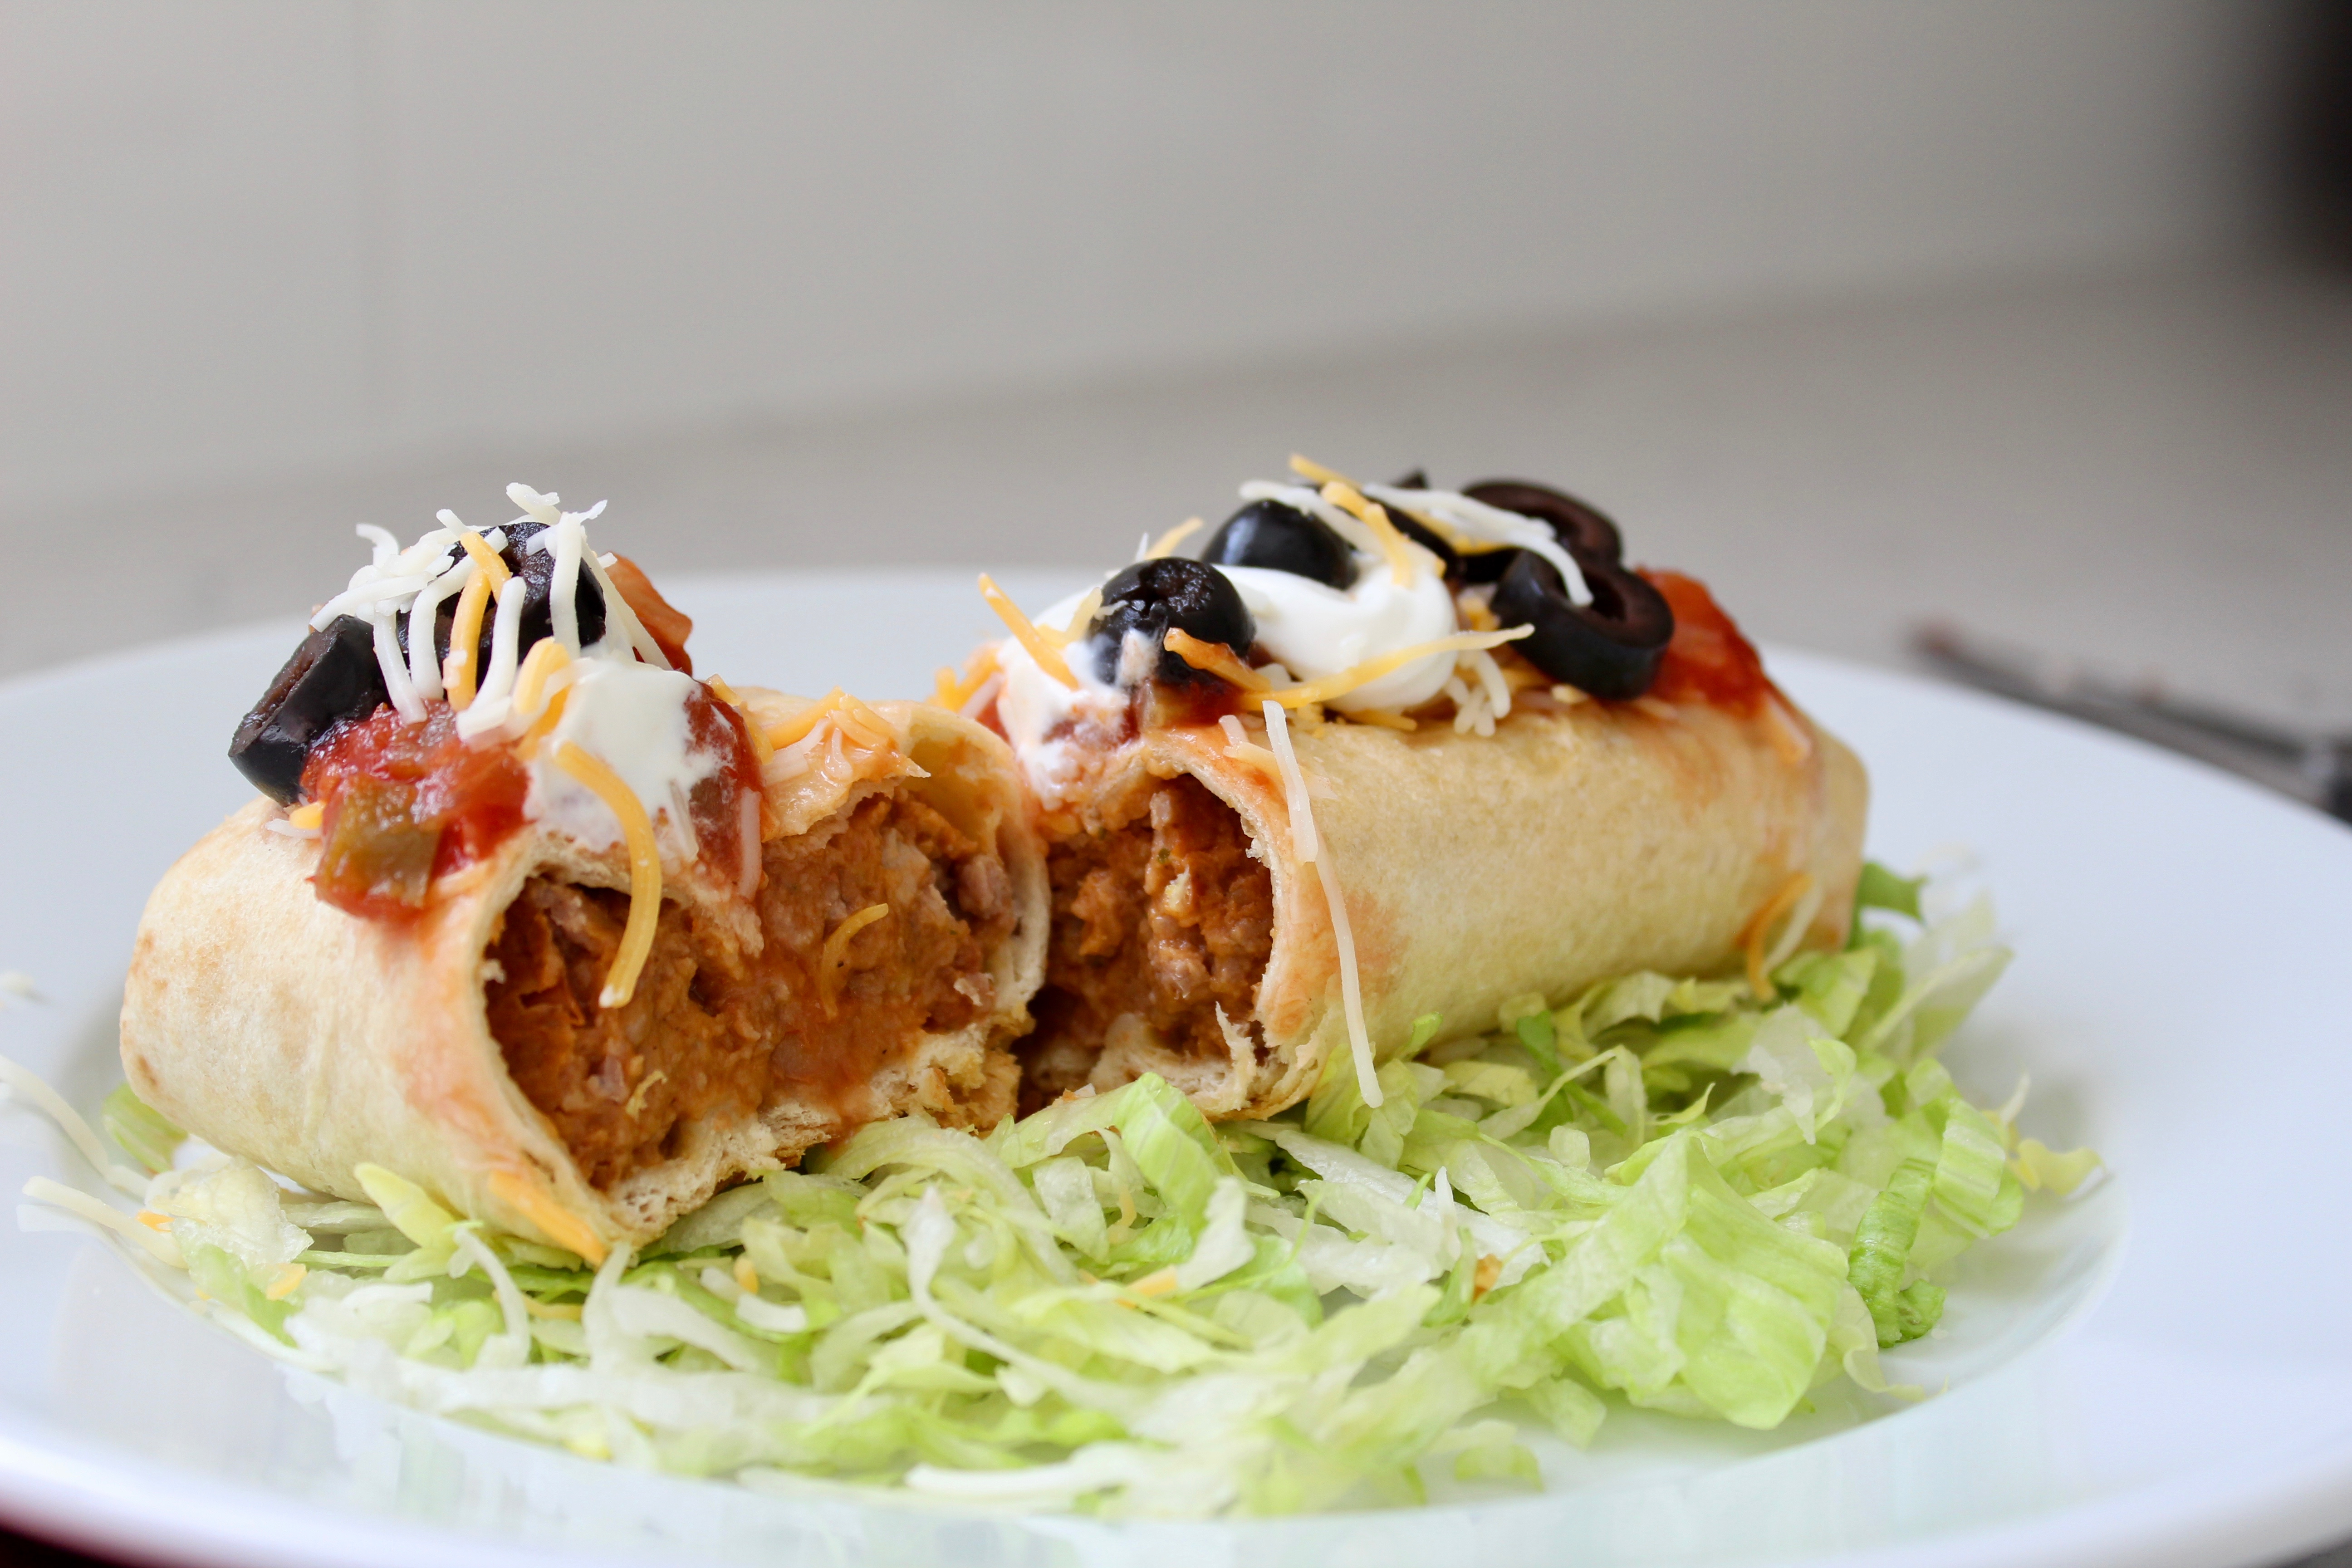 Impossible™ Baked Chimichangas